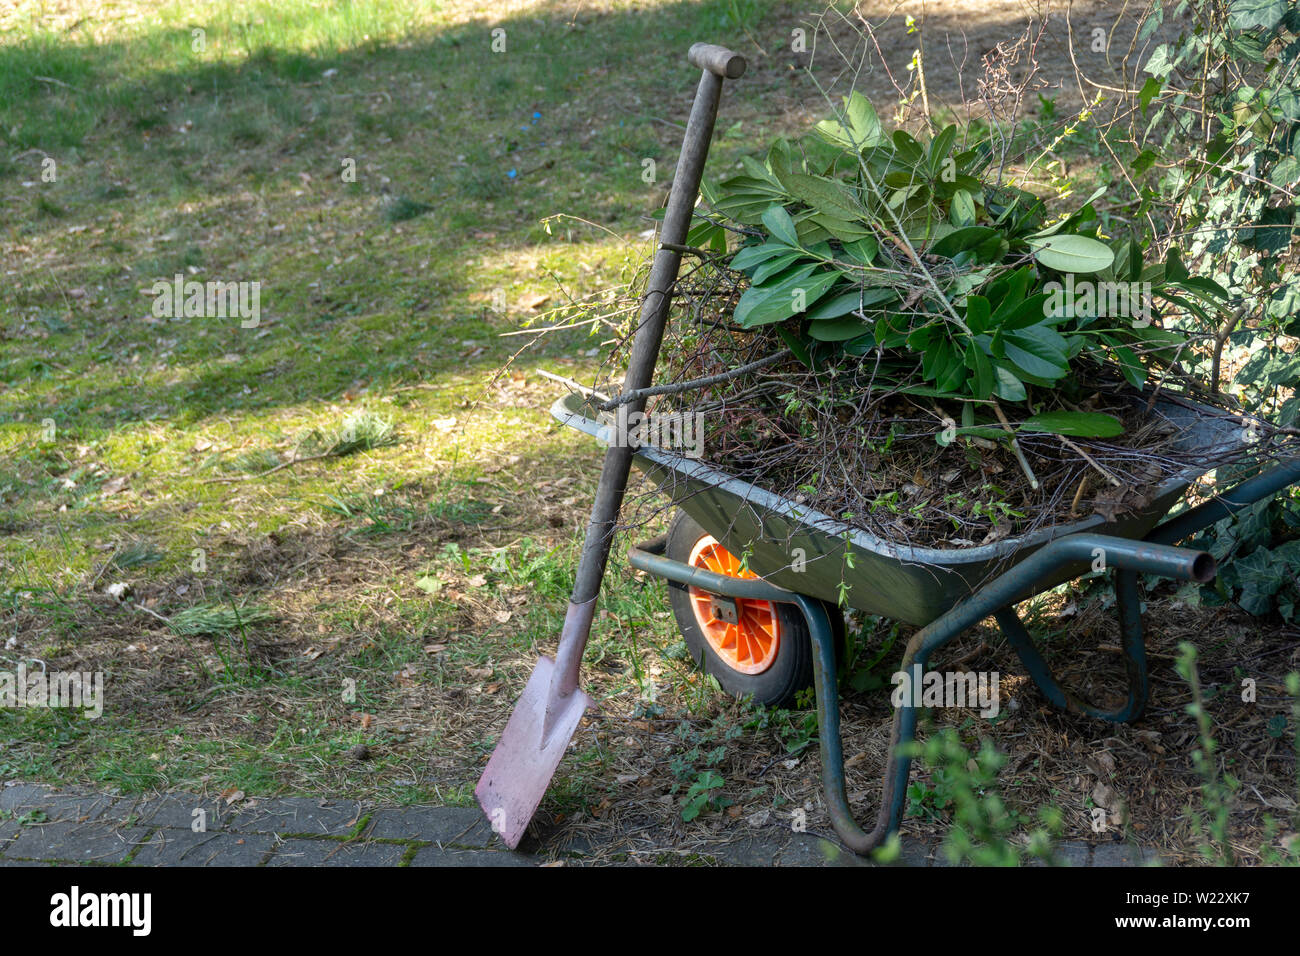 Wheelbarrow filled with leaves and branches with a fanned spade after gardening in spring, gardening Stock Photo